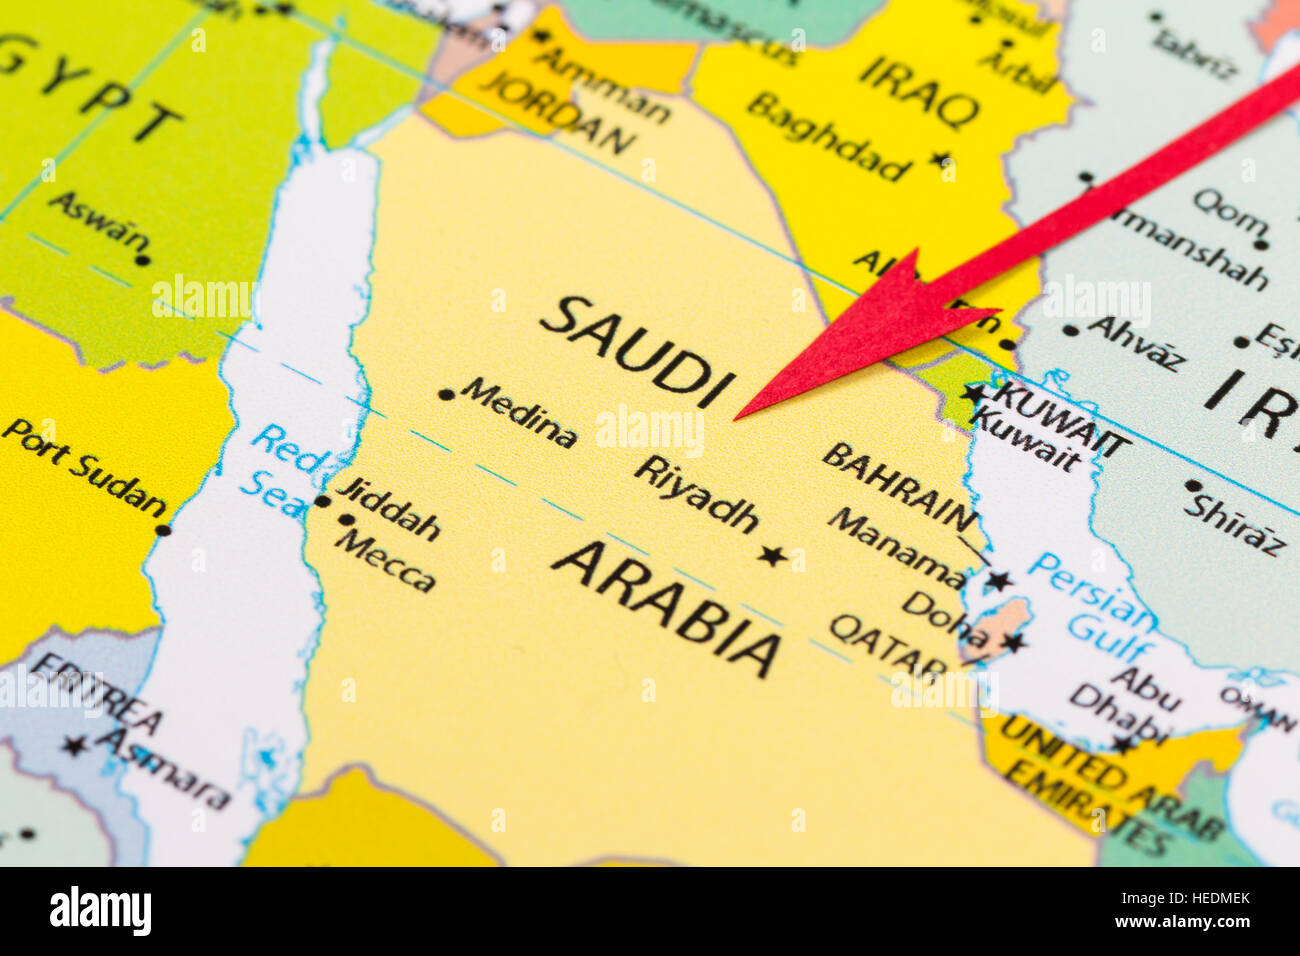 Saudi Arabia Map Stock Photos & Saudi Arabia Map Stock ...